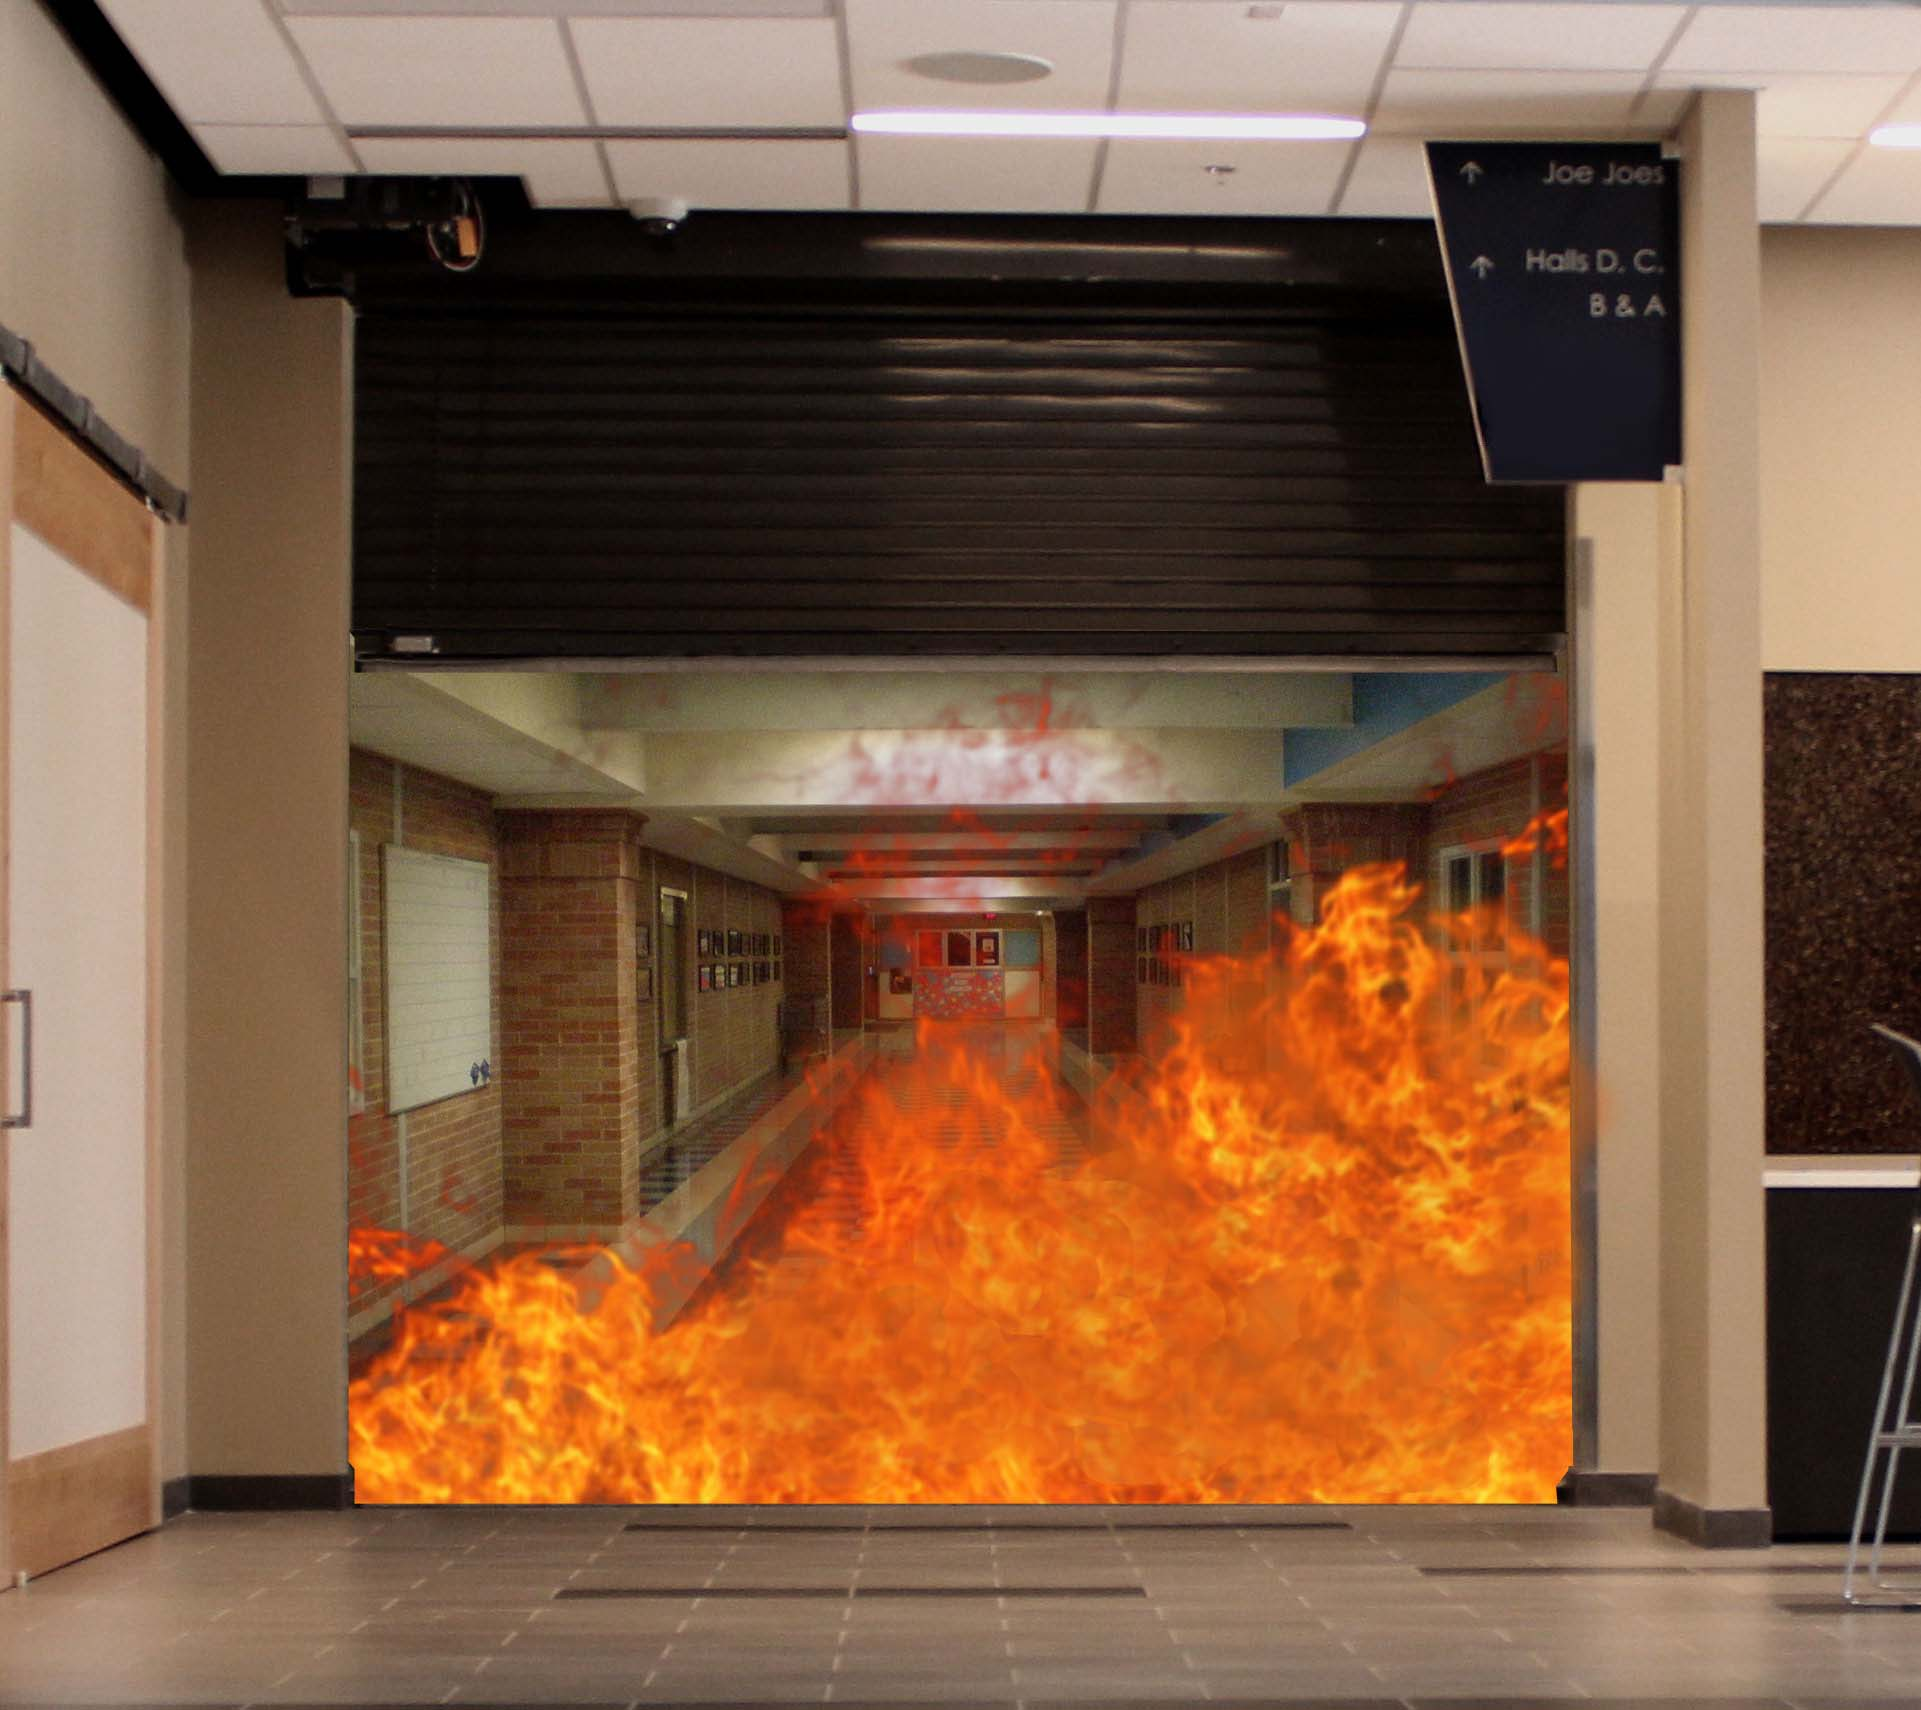 Fire Door with Fire Behind 2015